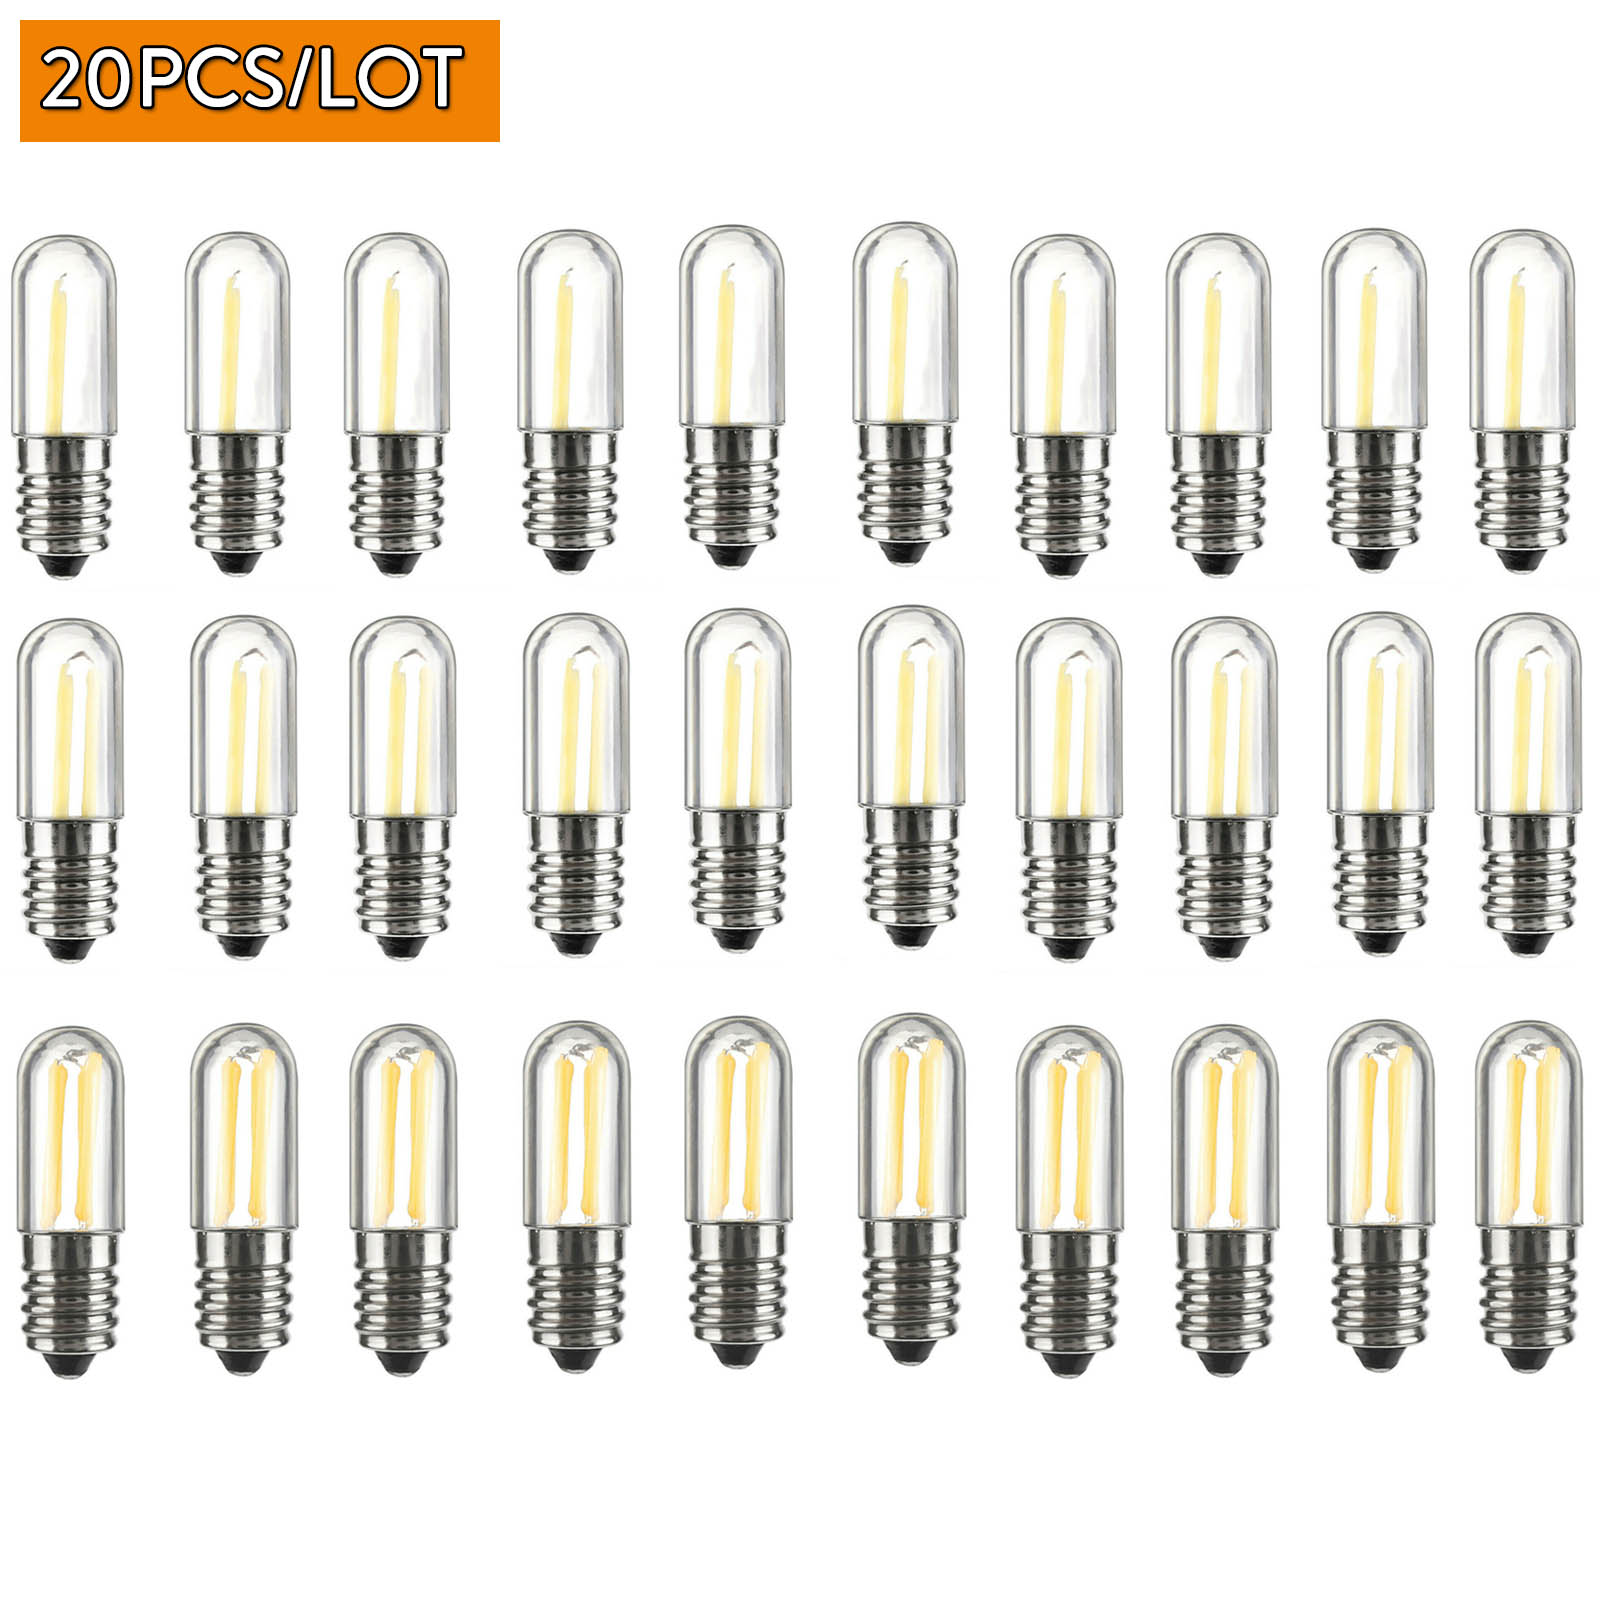 20PCS Dimmable <font><b>LED</b></font> COB Filament Light <font><b>Bulbs</b></font> Mini E12 E14 <font><b>1W</b></font> 2W 4W Lamps for Refrigerator Fridge Freezer sewing machine Lighting image